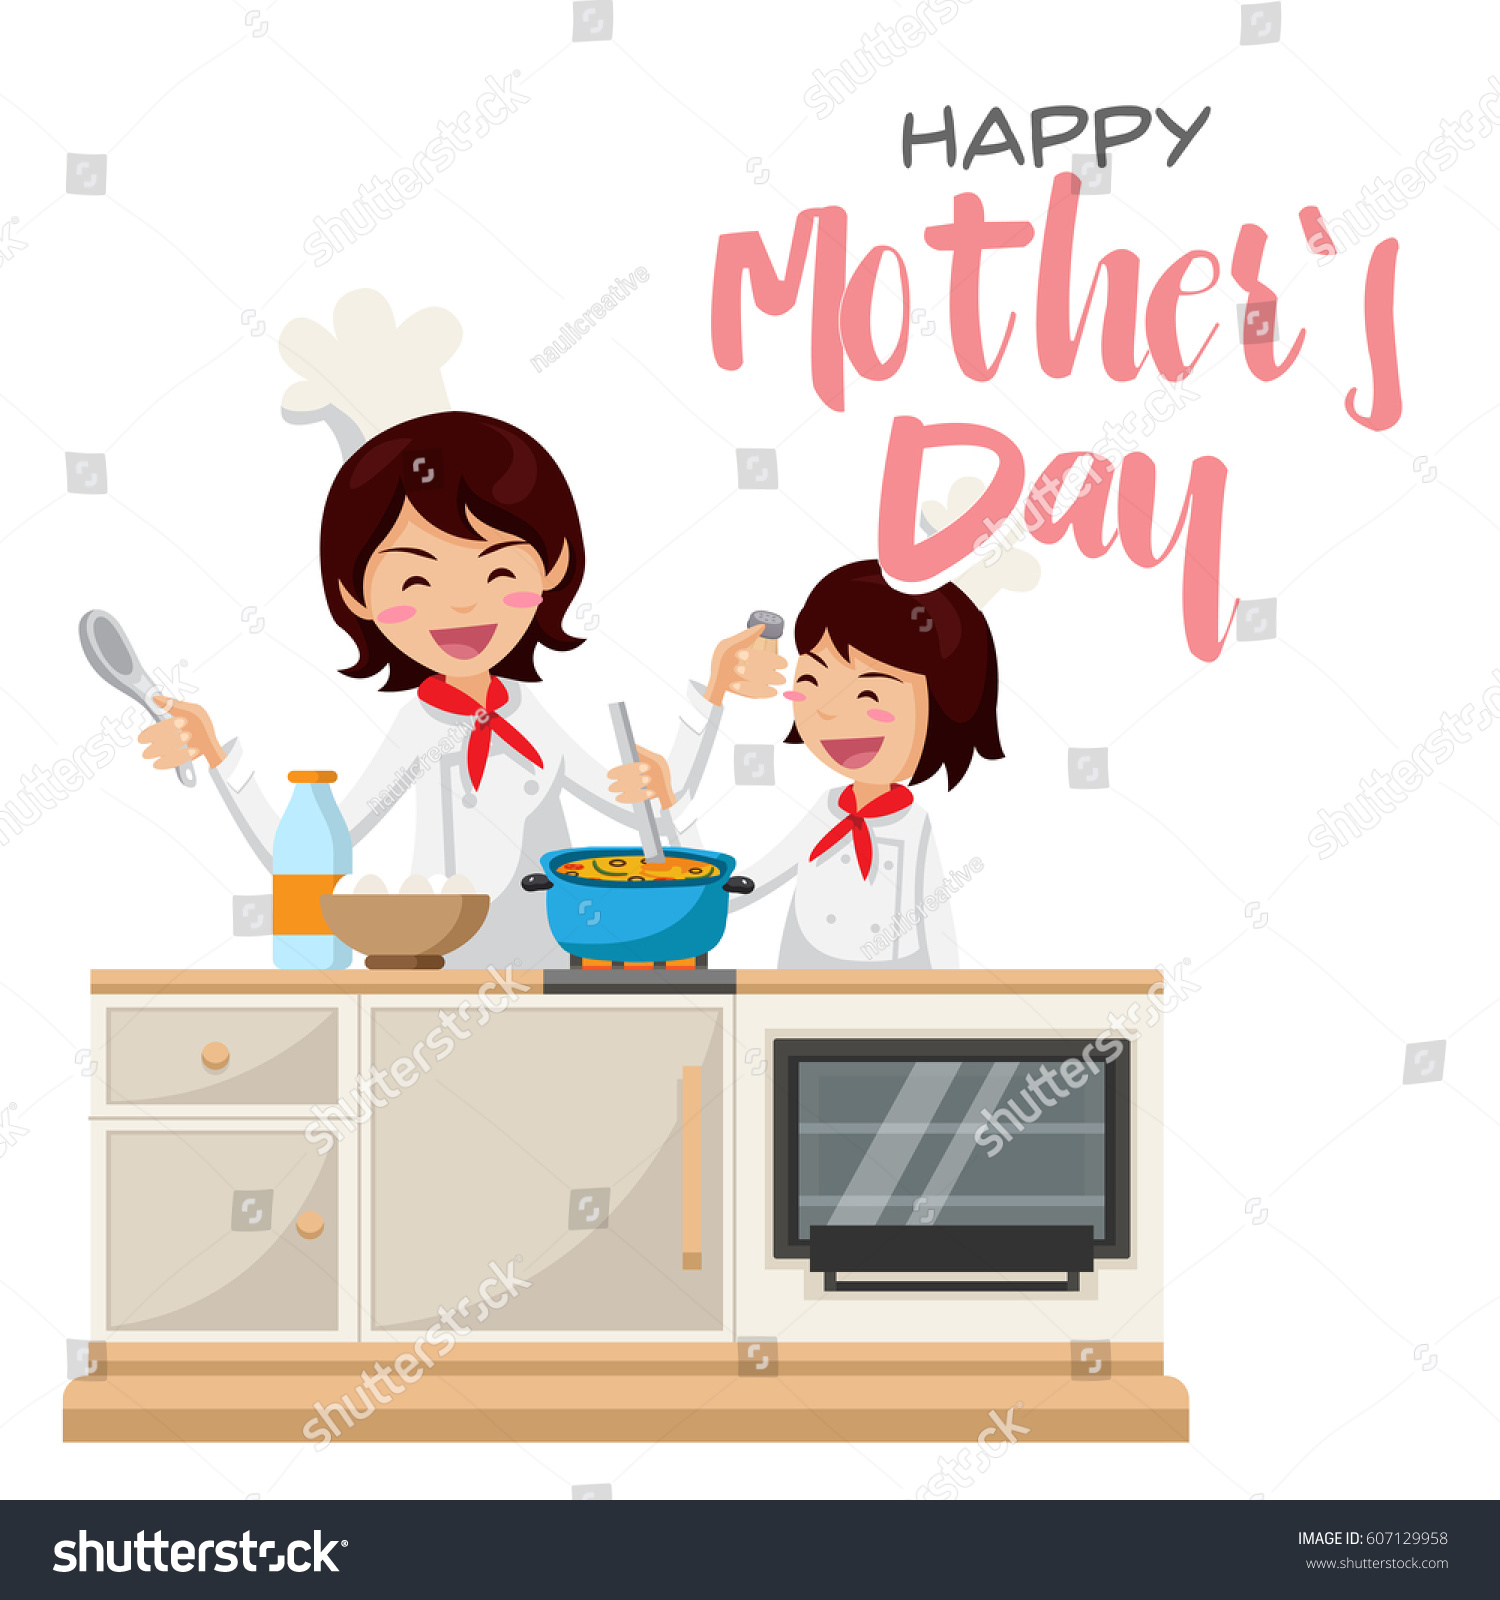 Isolated Cute Happy Mothers Day Mom Stock Vector 607129958 ...